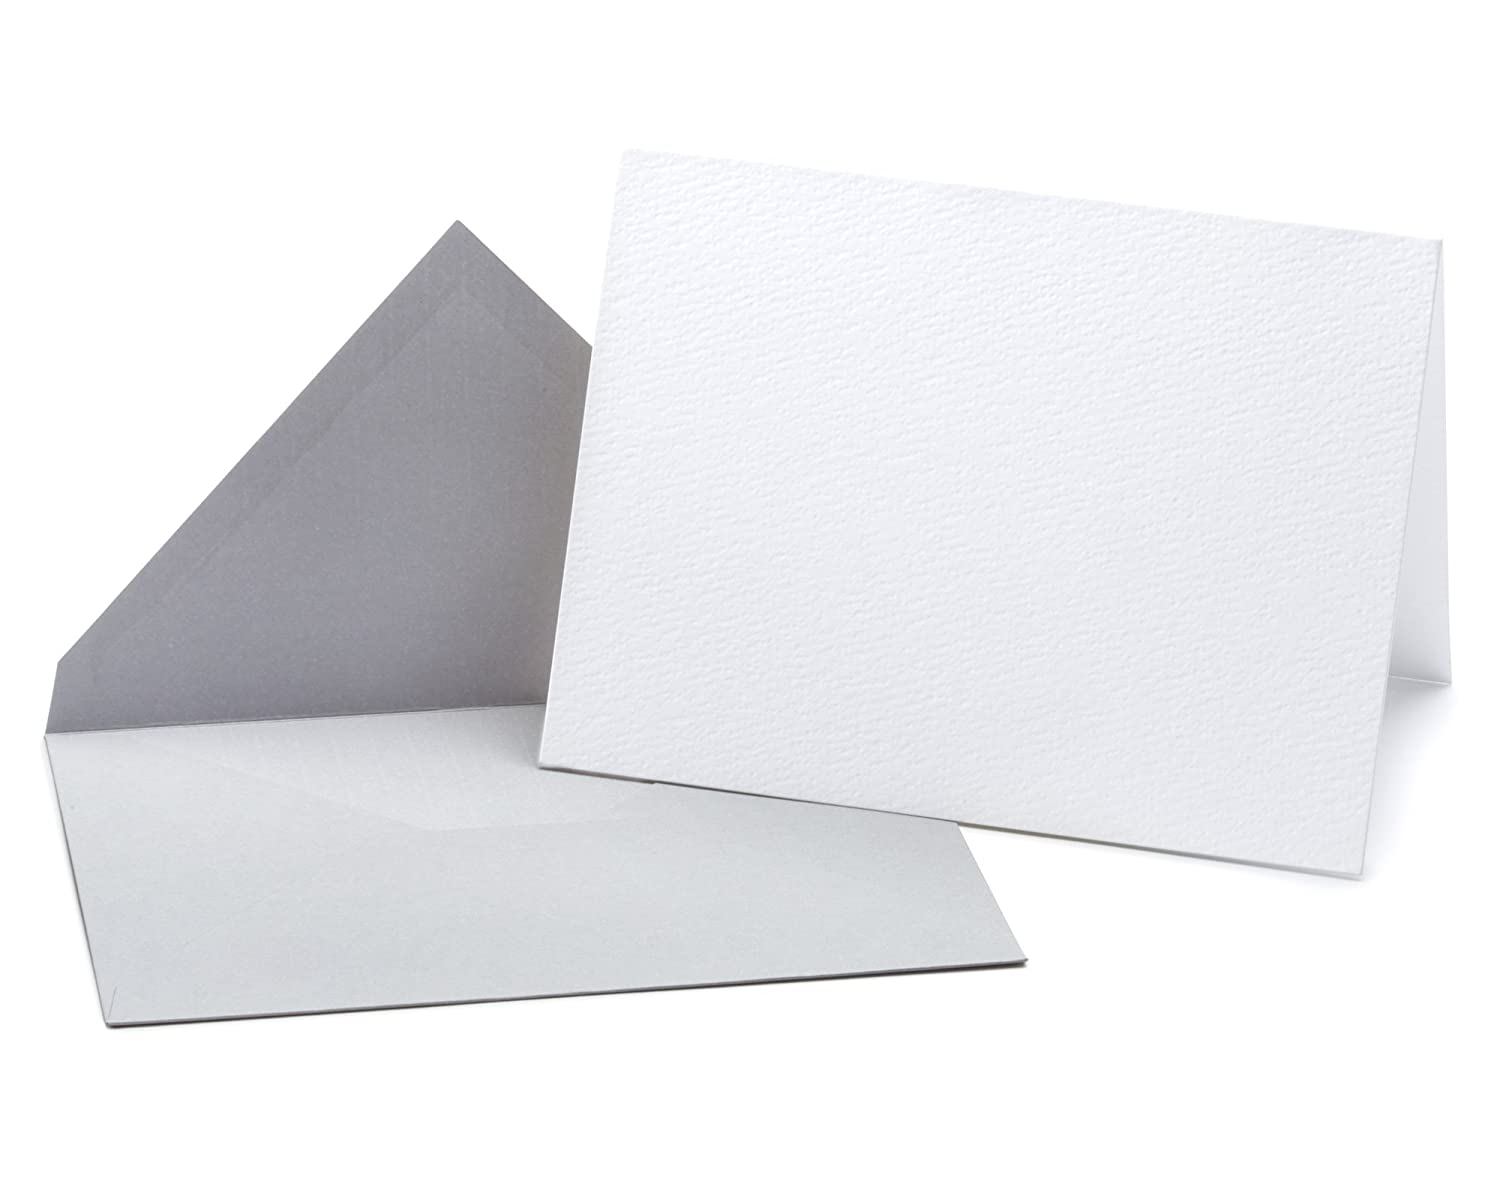 20 Blank Cards and Envelopes - Opie's Paper Company Opie's Paper Co. 4336867748